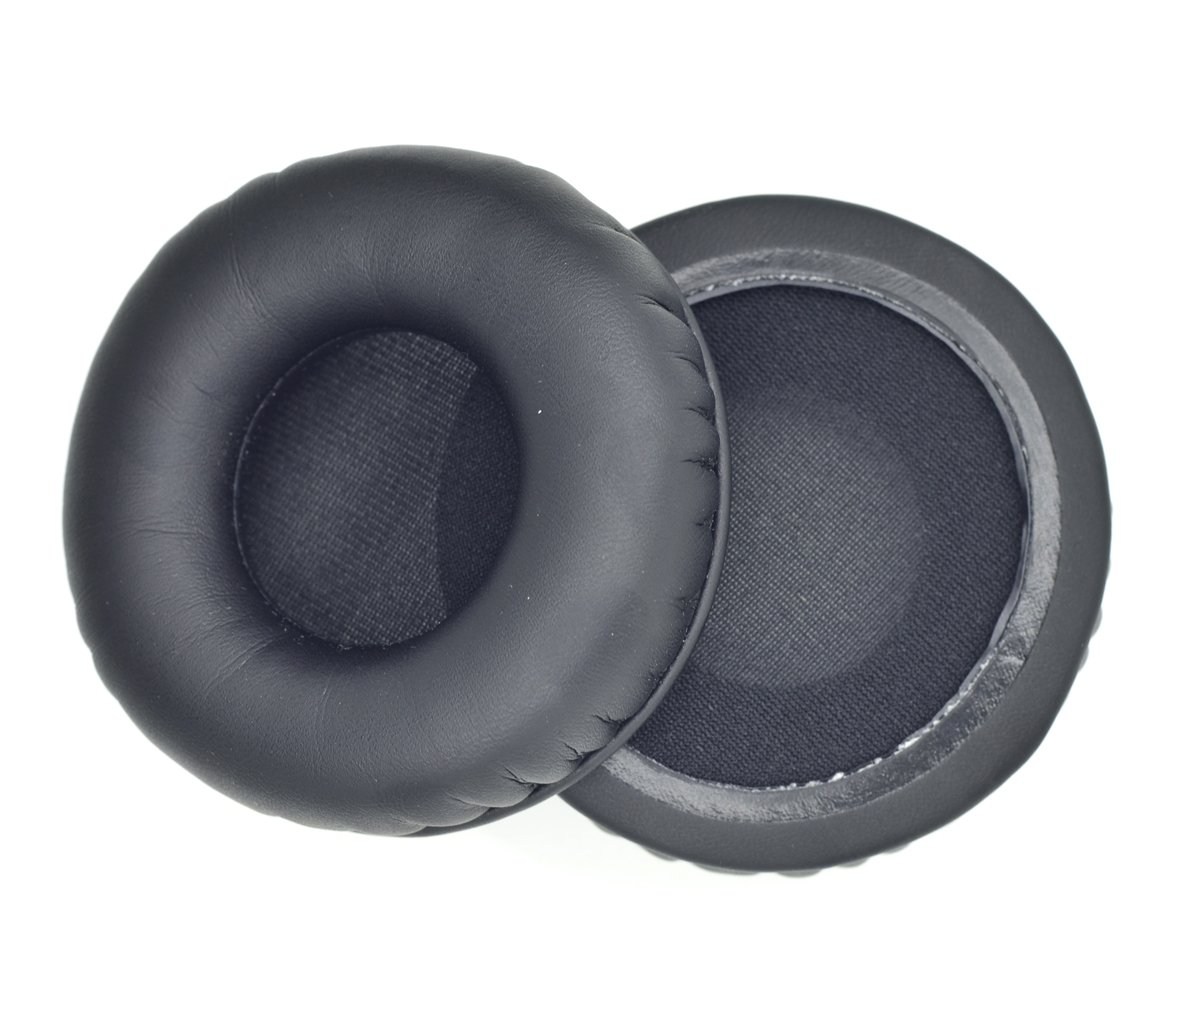 709126c3fa9 Amazon.com: Replacement Cushion Ear Pads Earmuff earpads Pillow Cover for  AKG K81 K518 K67 JBL SYNCHROS E40BT Headset Headphone: Home Audio & Theater